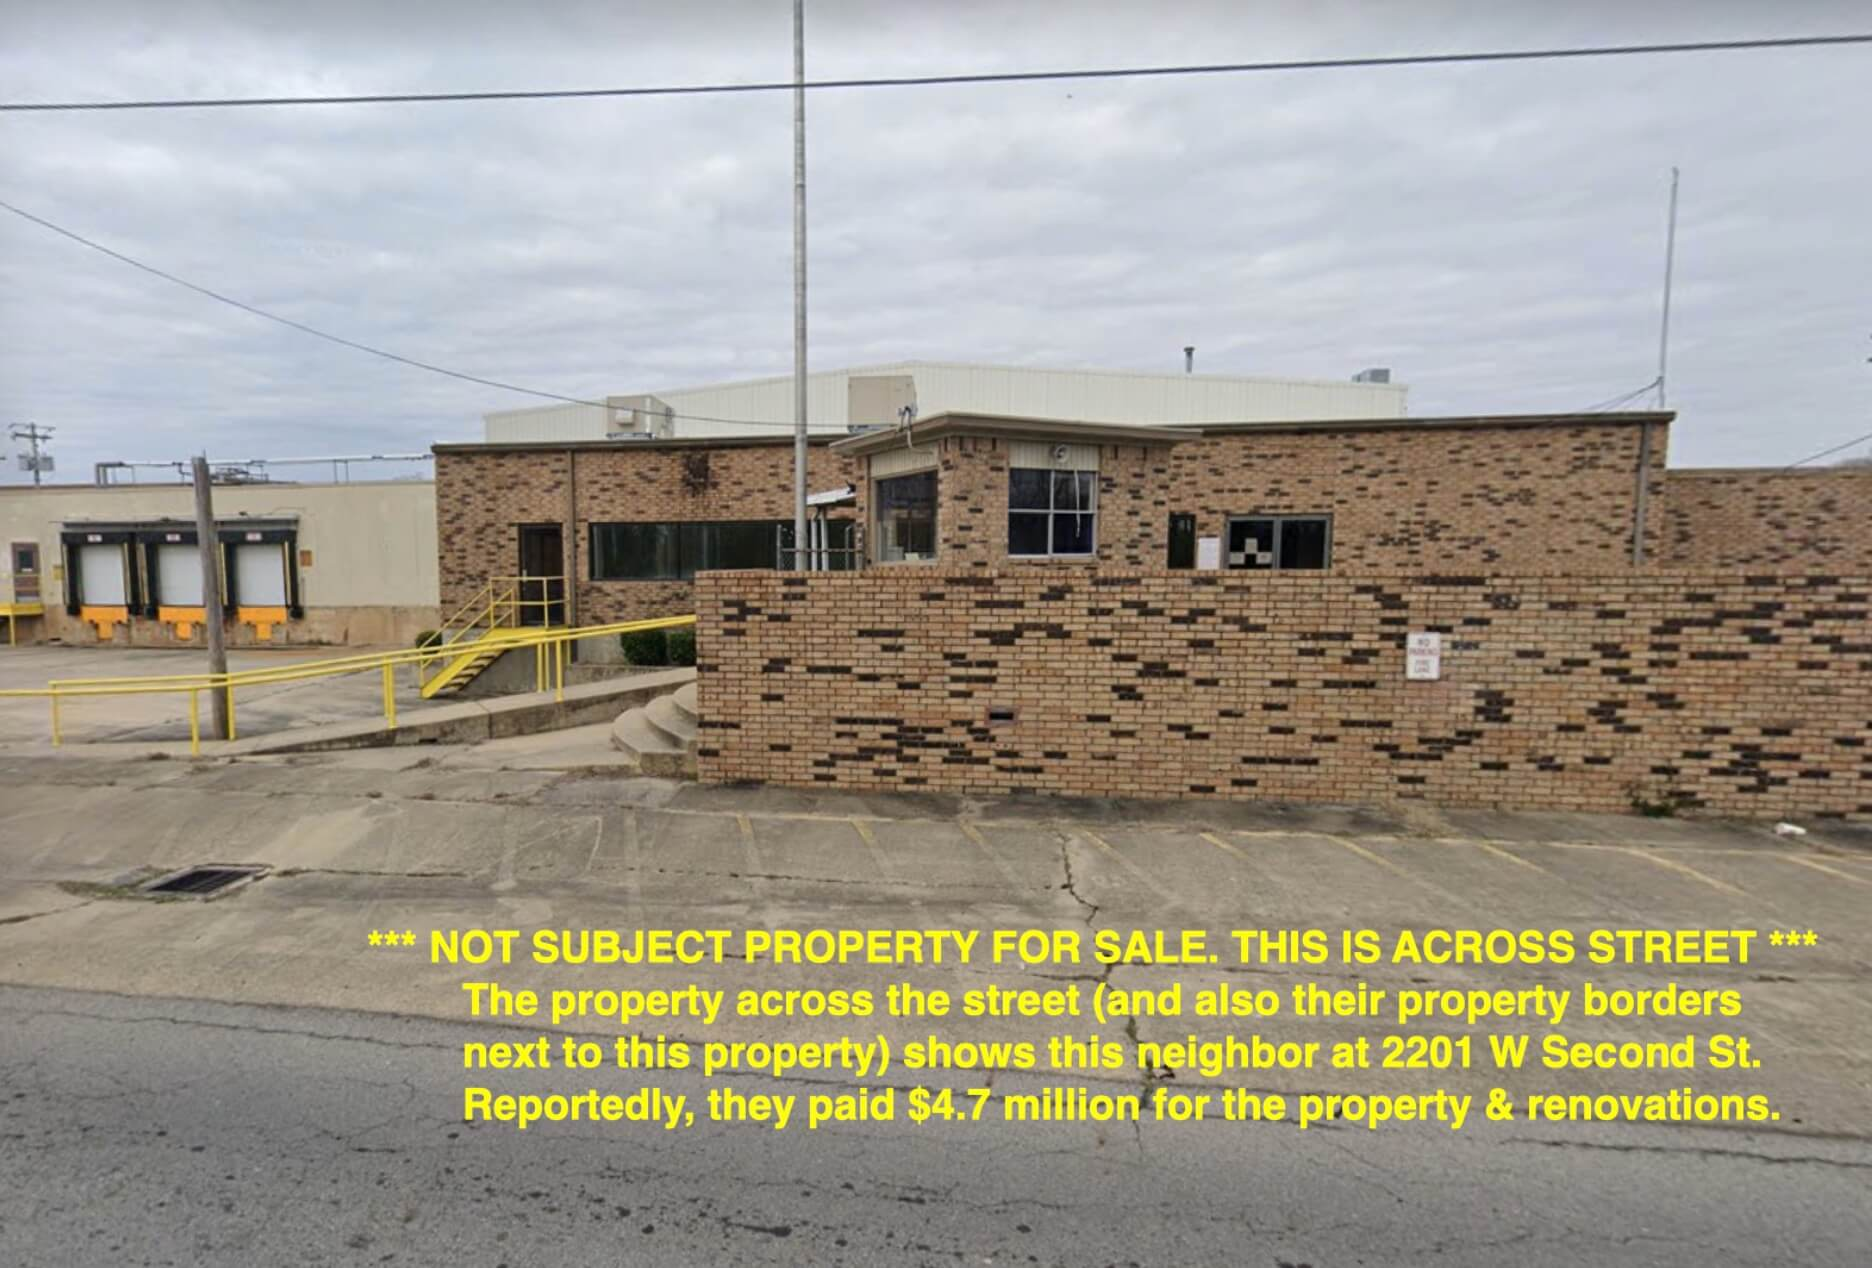 Land for Sale Next to Commercial Building! Land for Sale Only! Next to Building